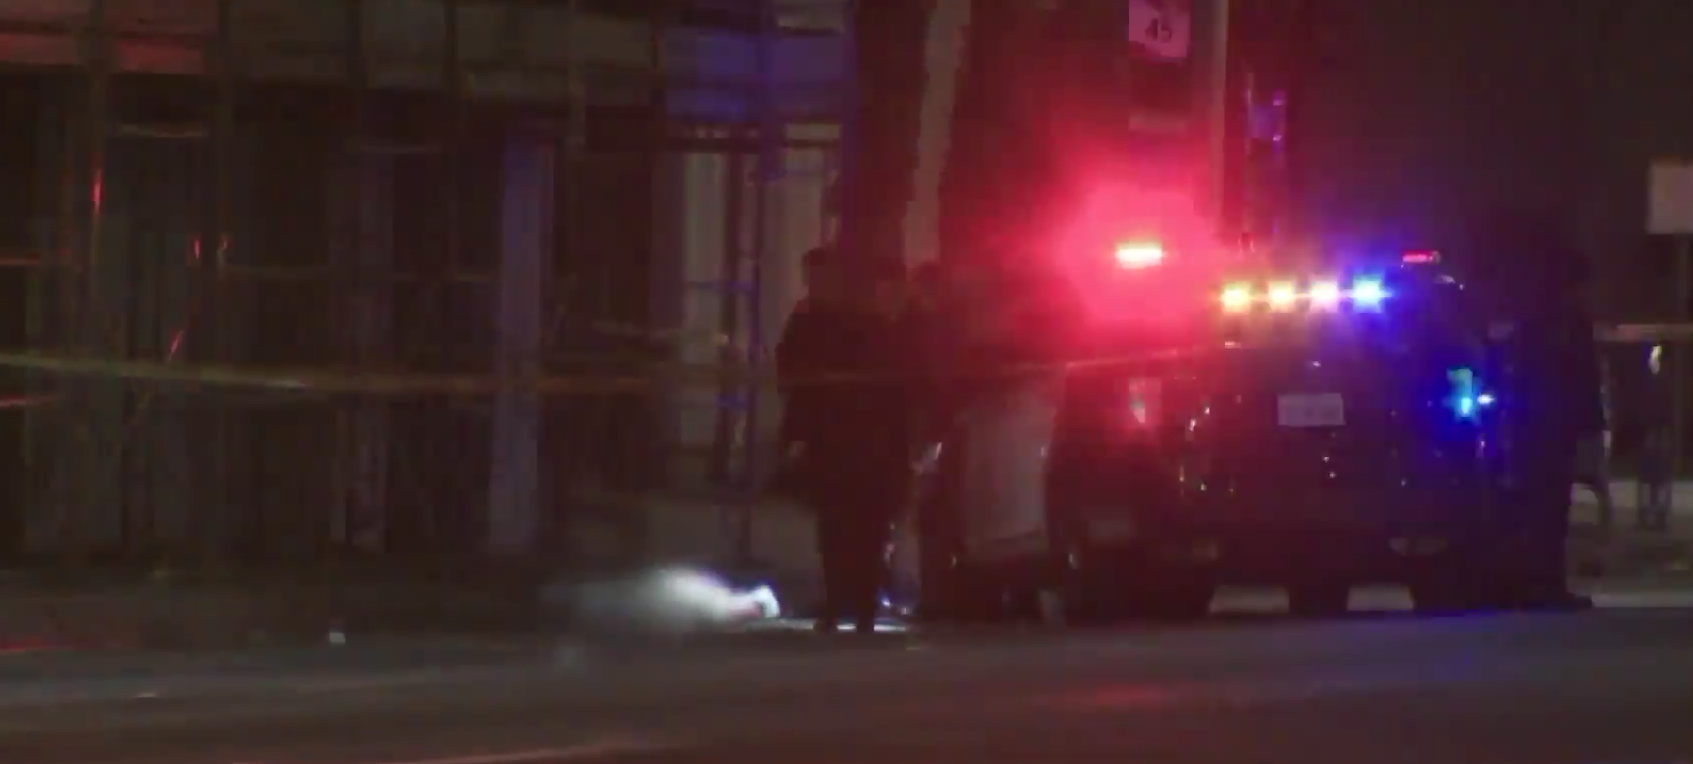 Police are seen investigating the scene after a man was fatally shot in Long Beach on Jan. 23, 2019. (Credit: KTLA)